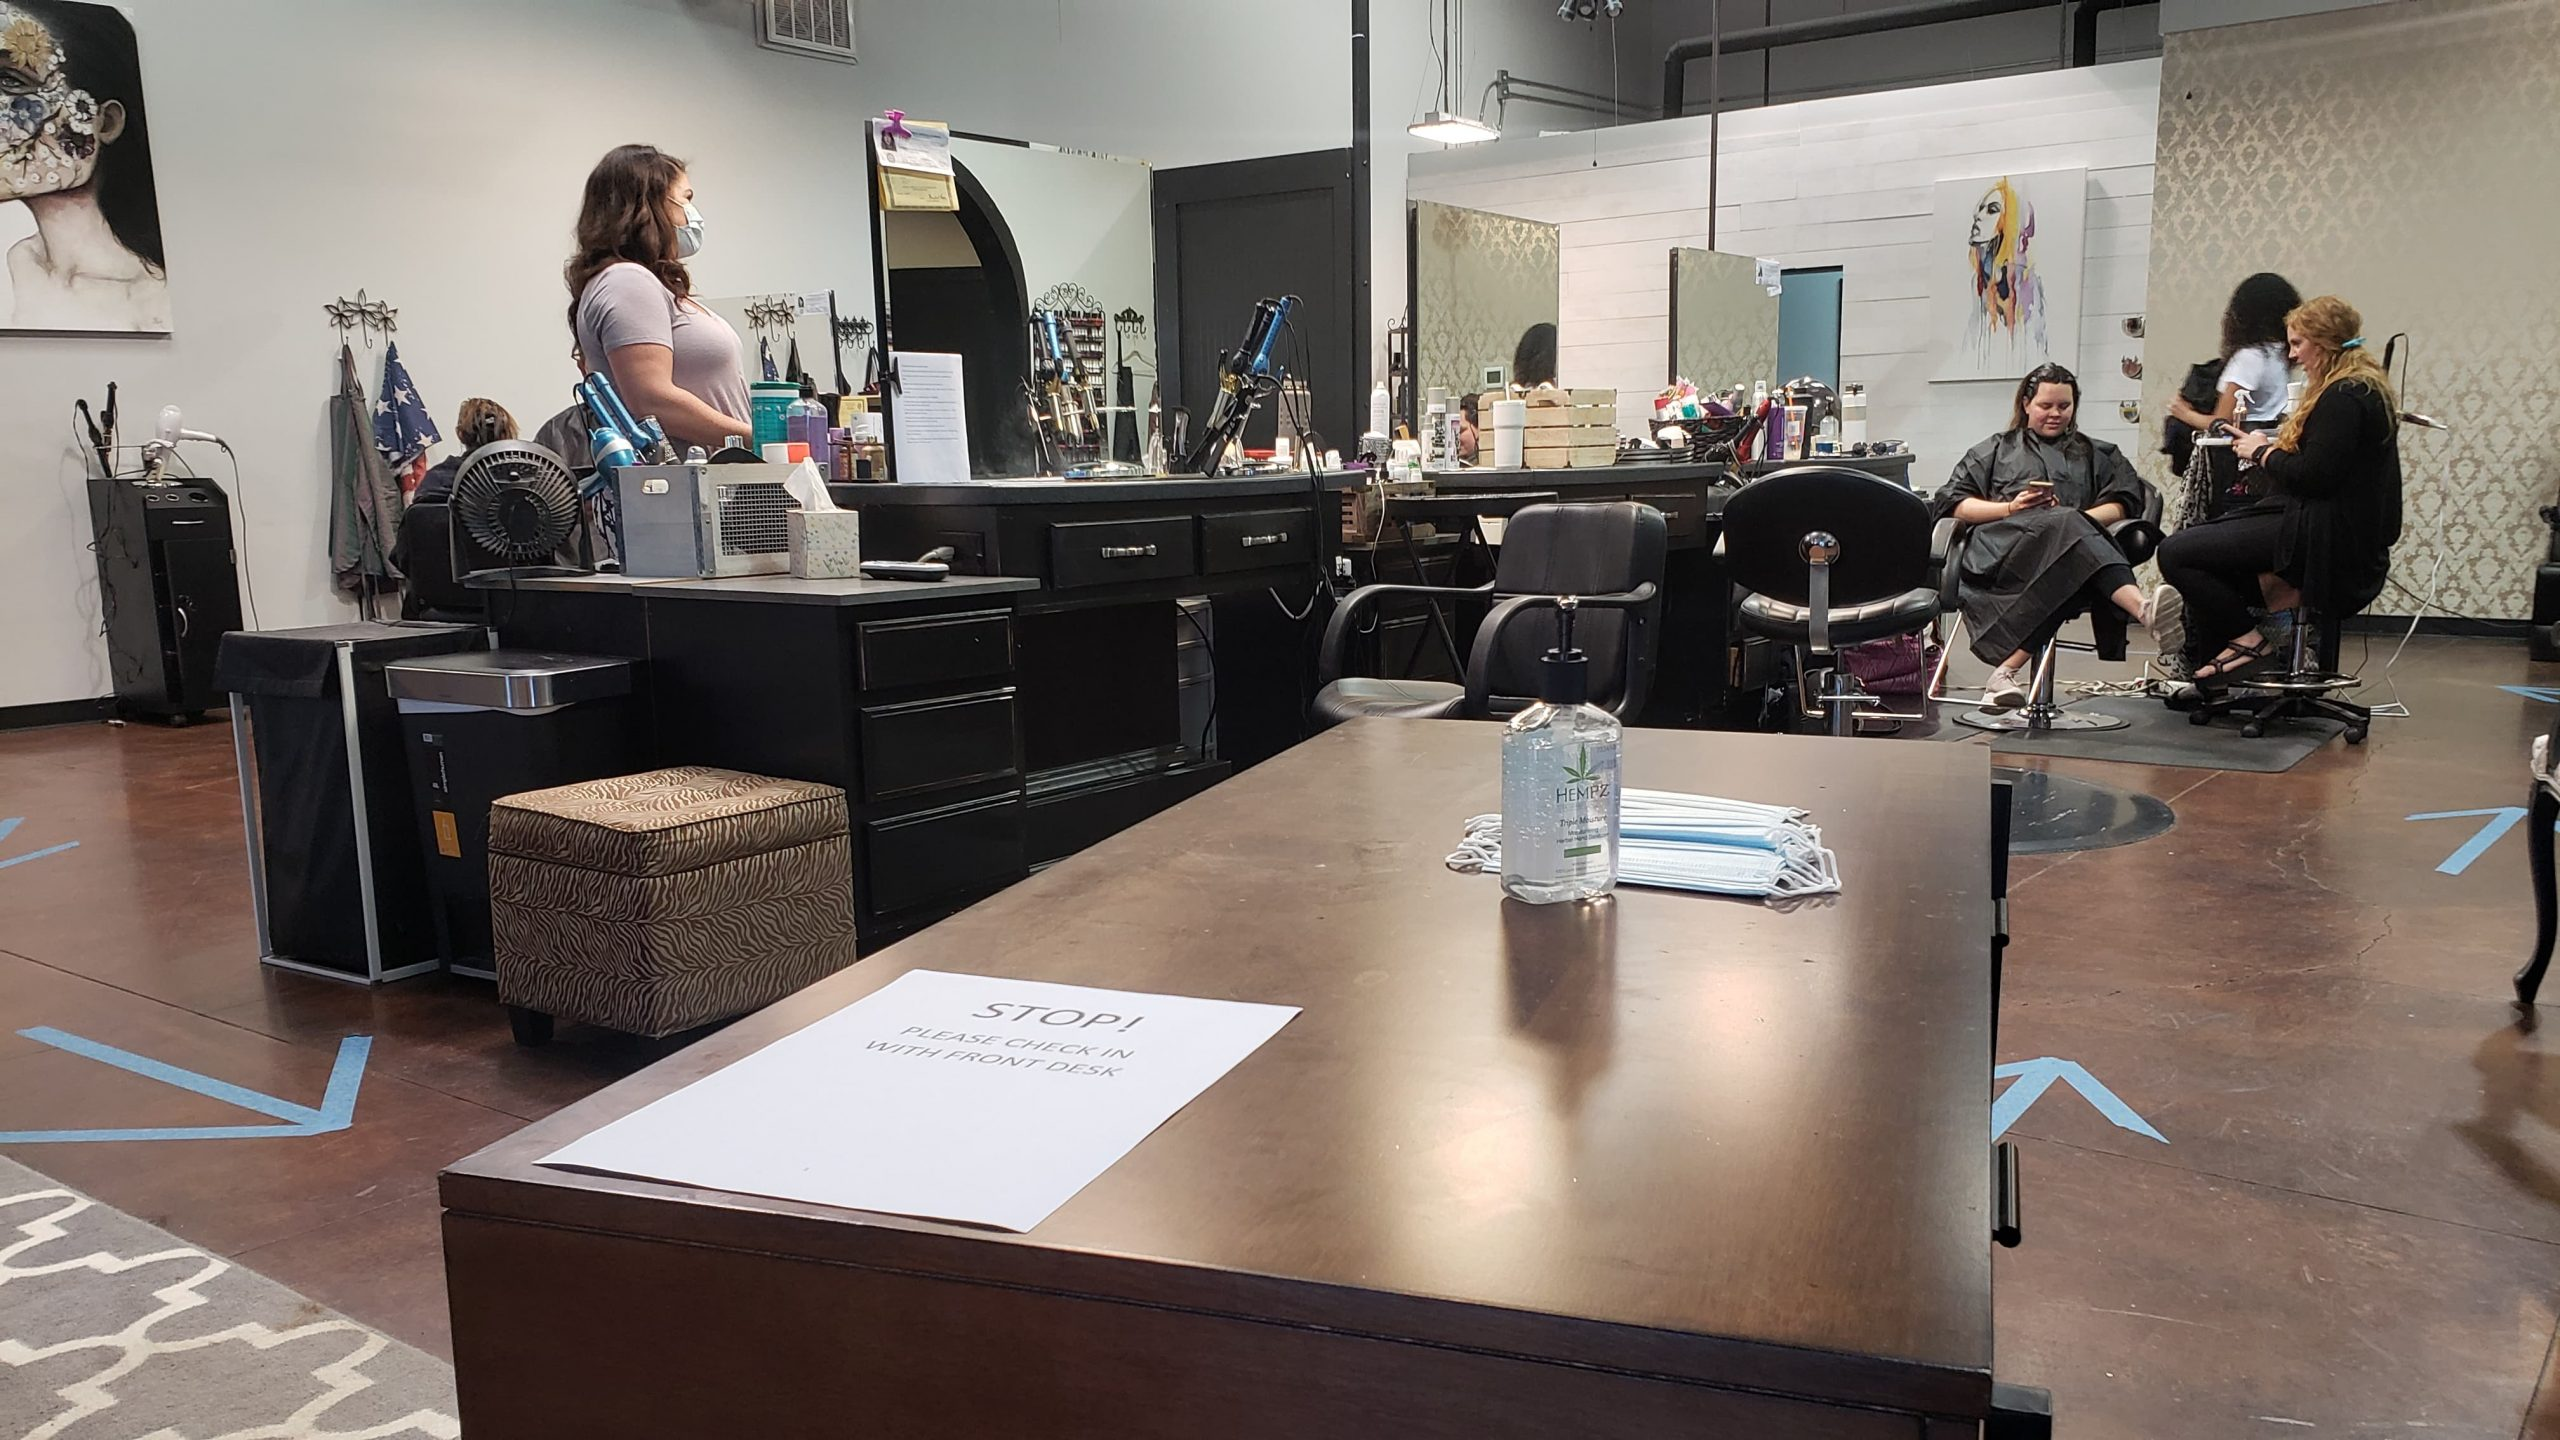 HIGHLIGHTS: Local hair salons are back in business